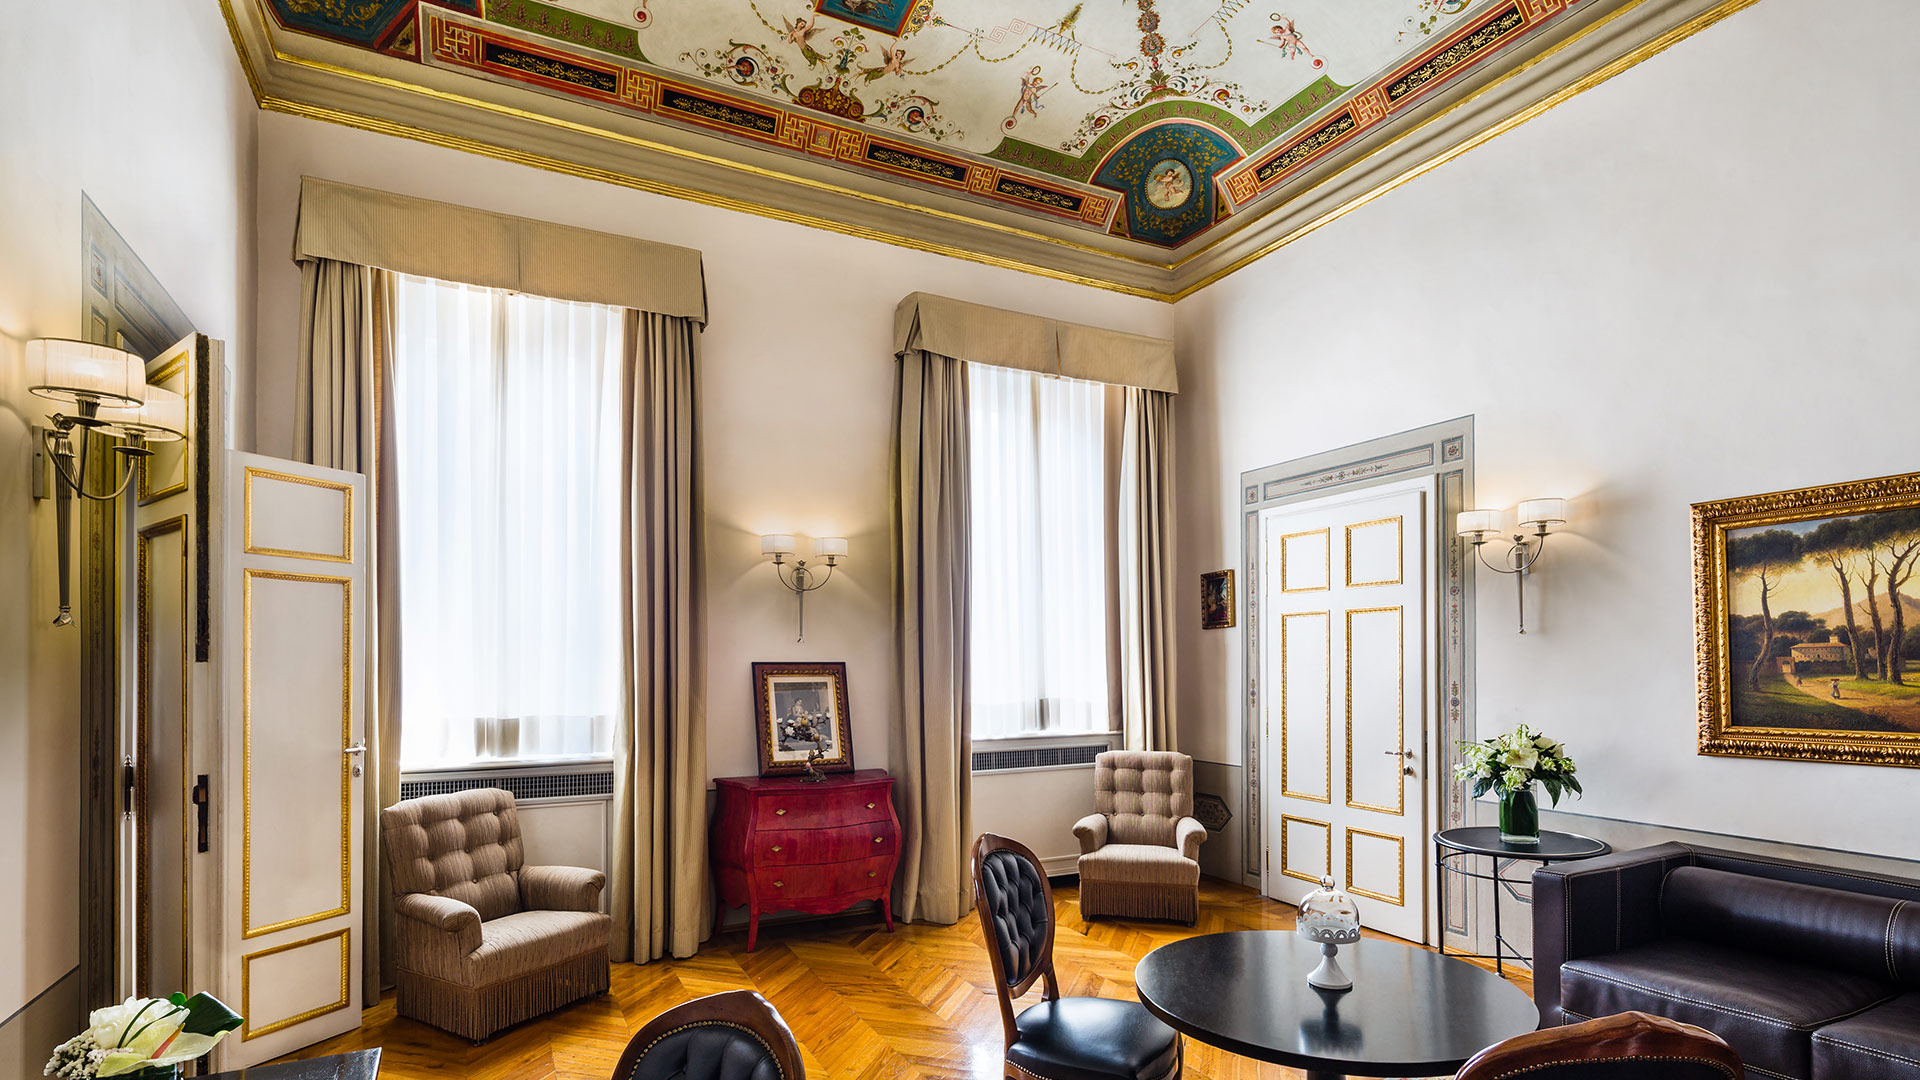 Living room Suite De Pepi Relais Santa Croce Firenze